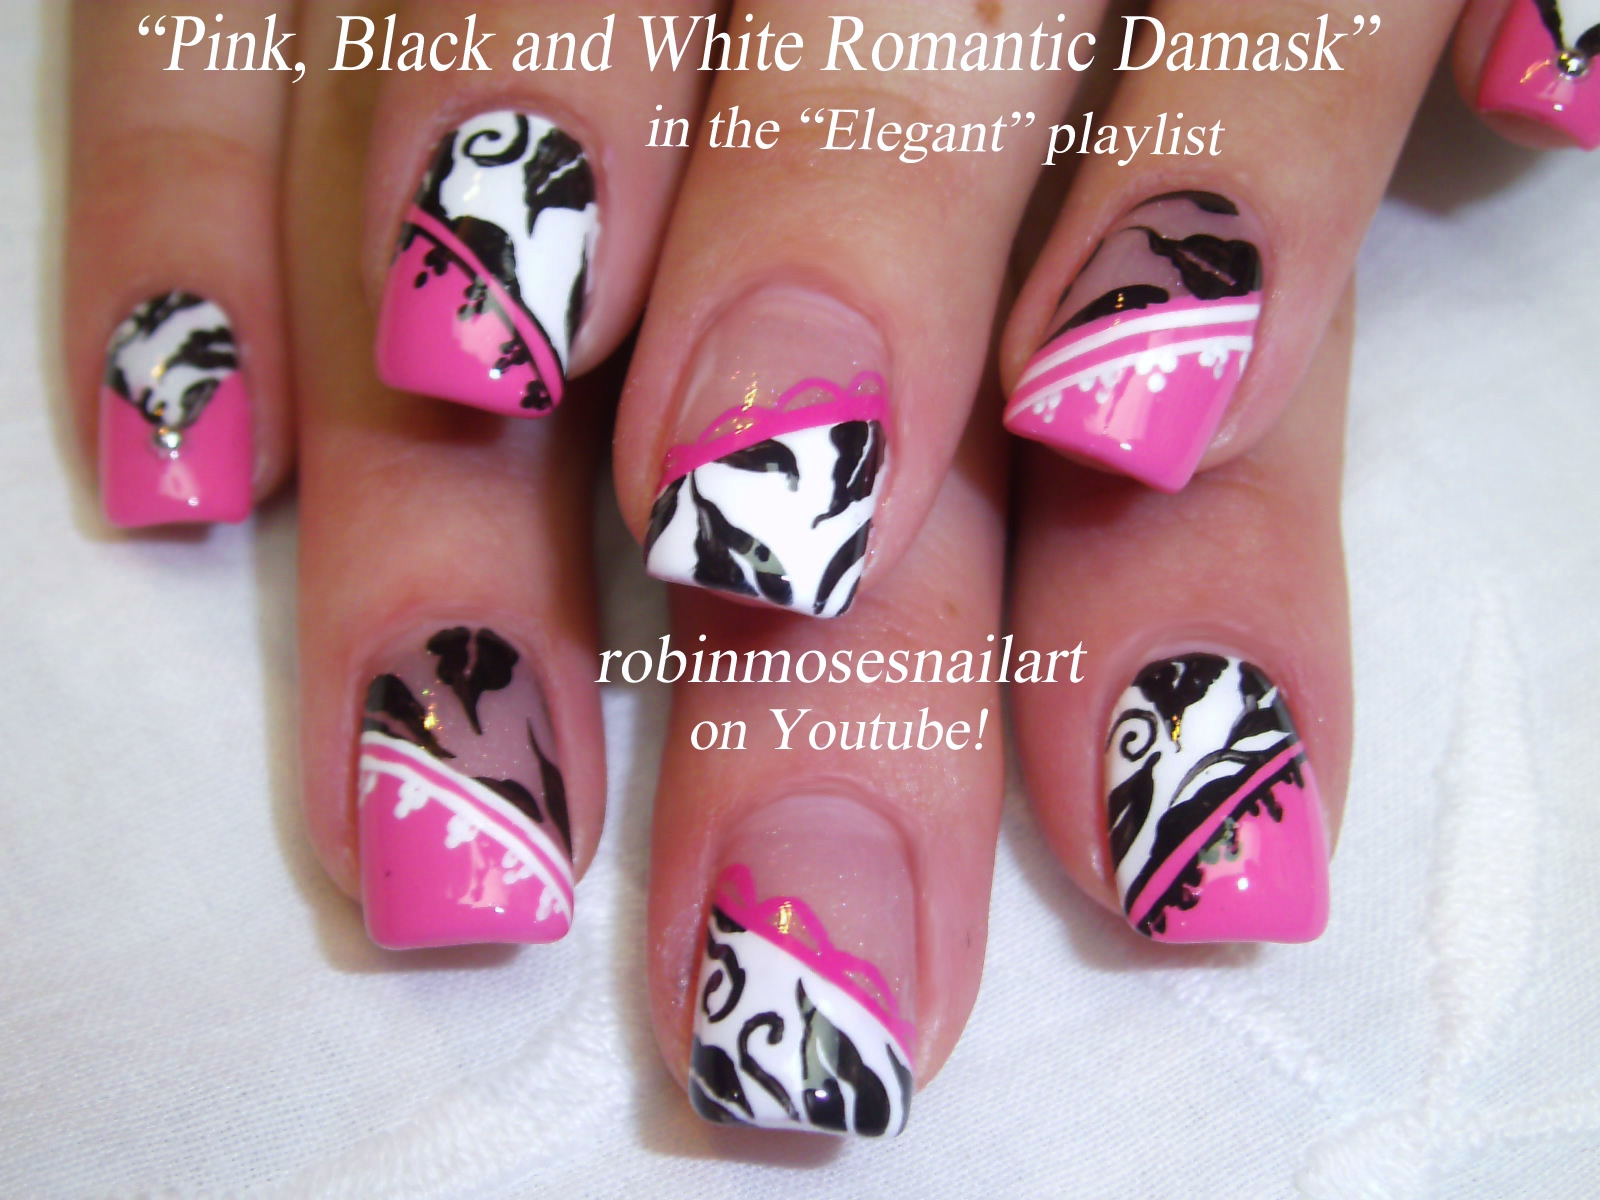 Nail Art Design Damask Nail Art Pink Black Damask Pink Black And